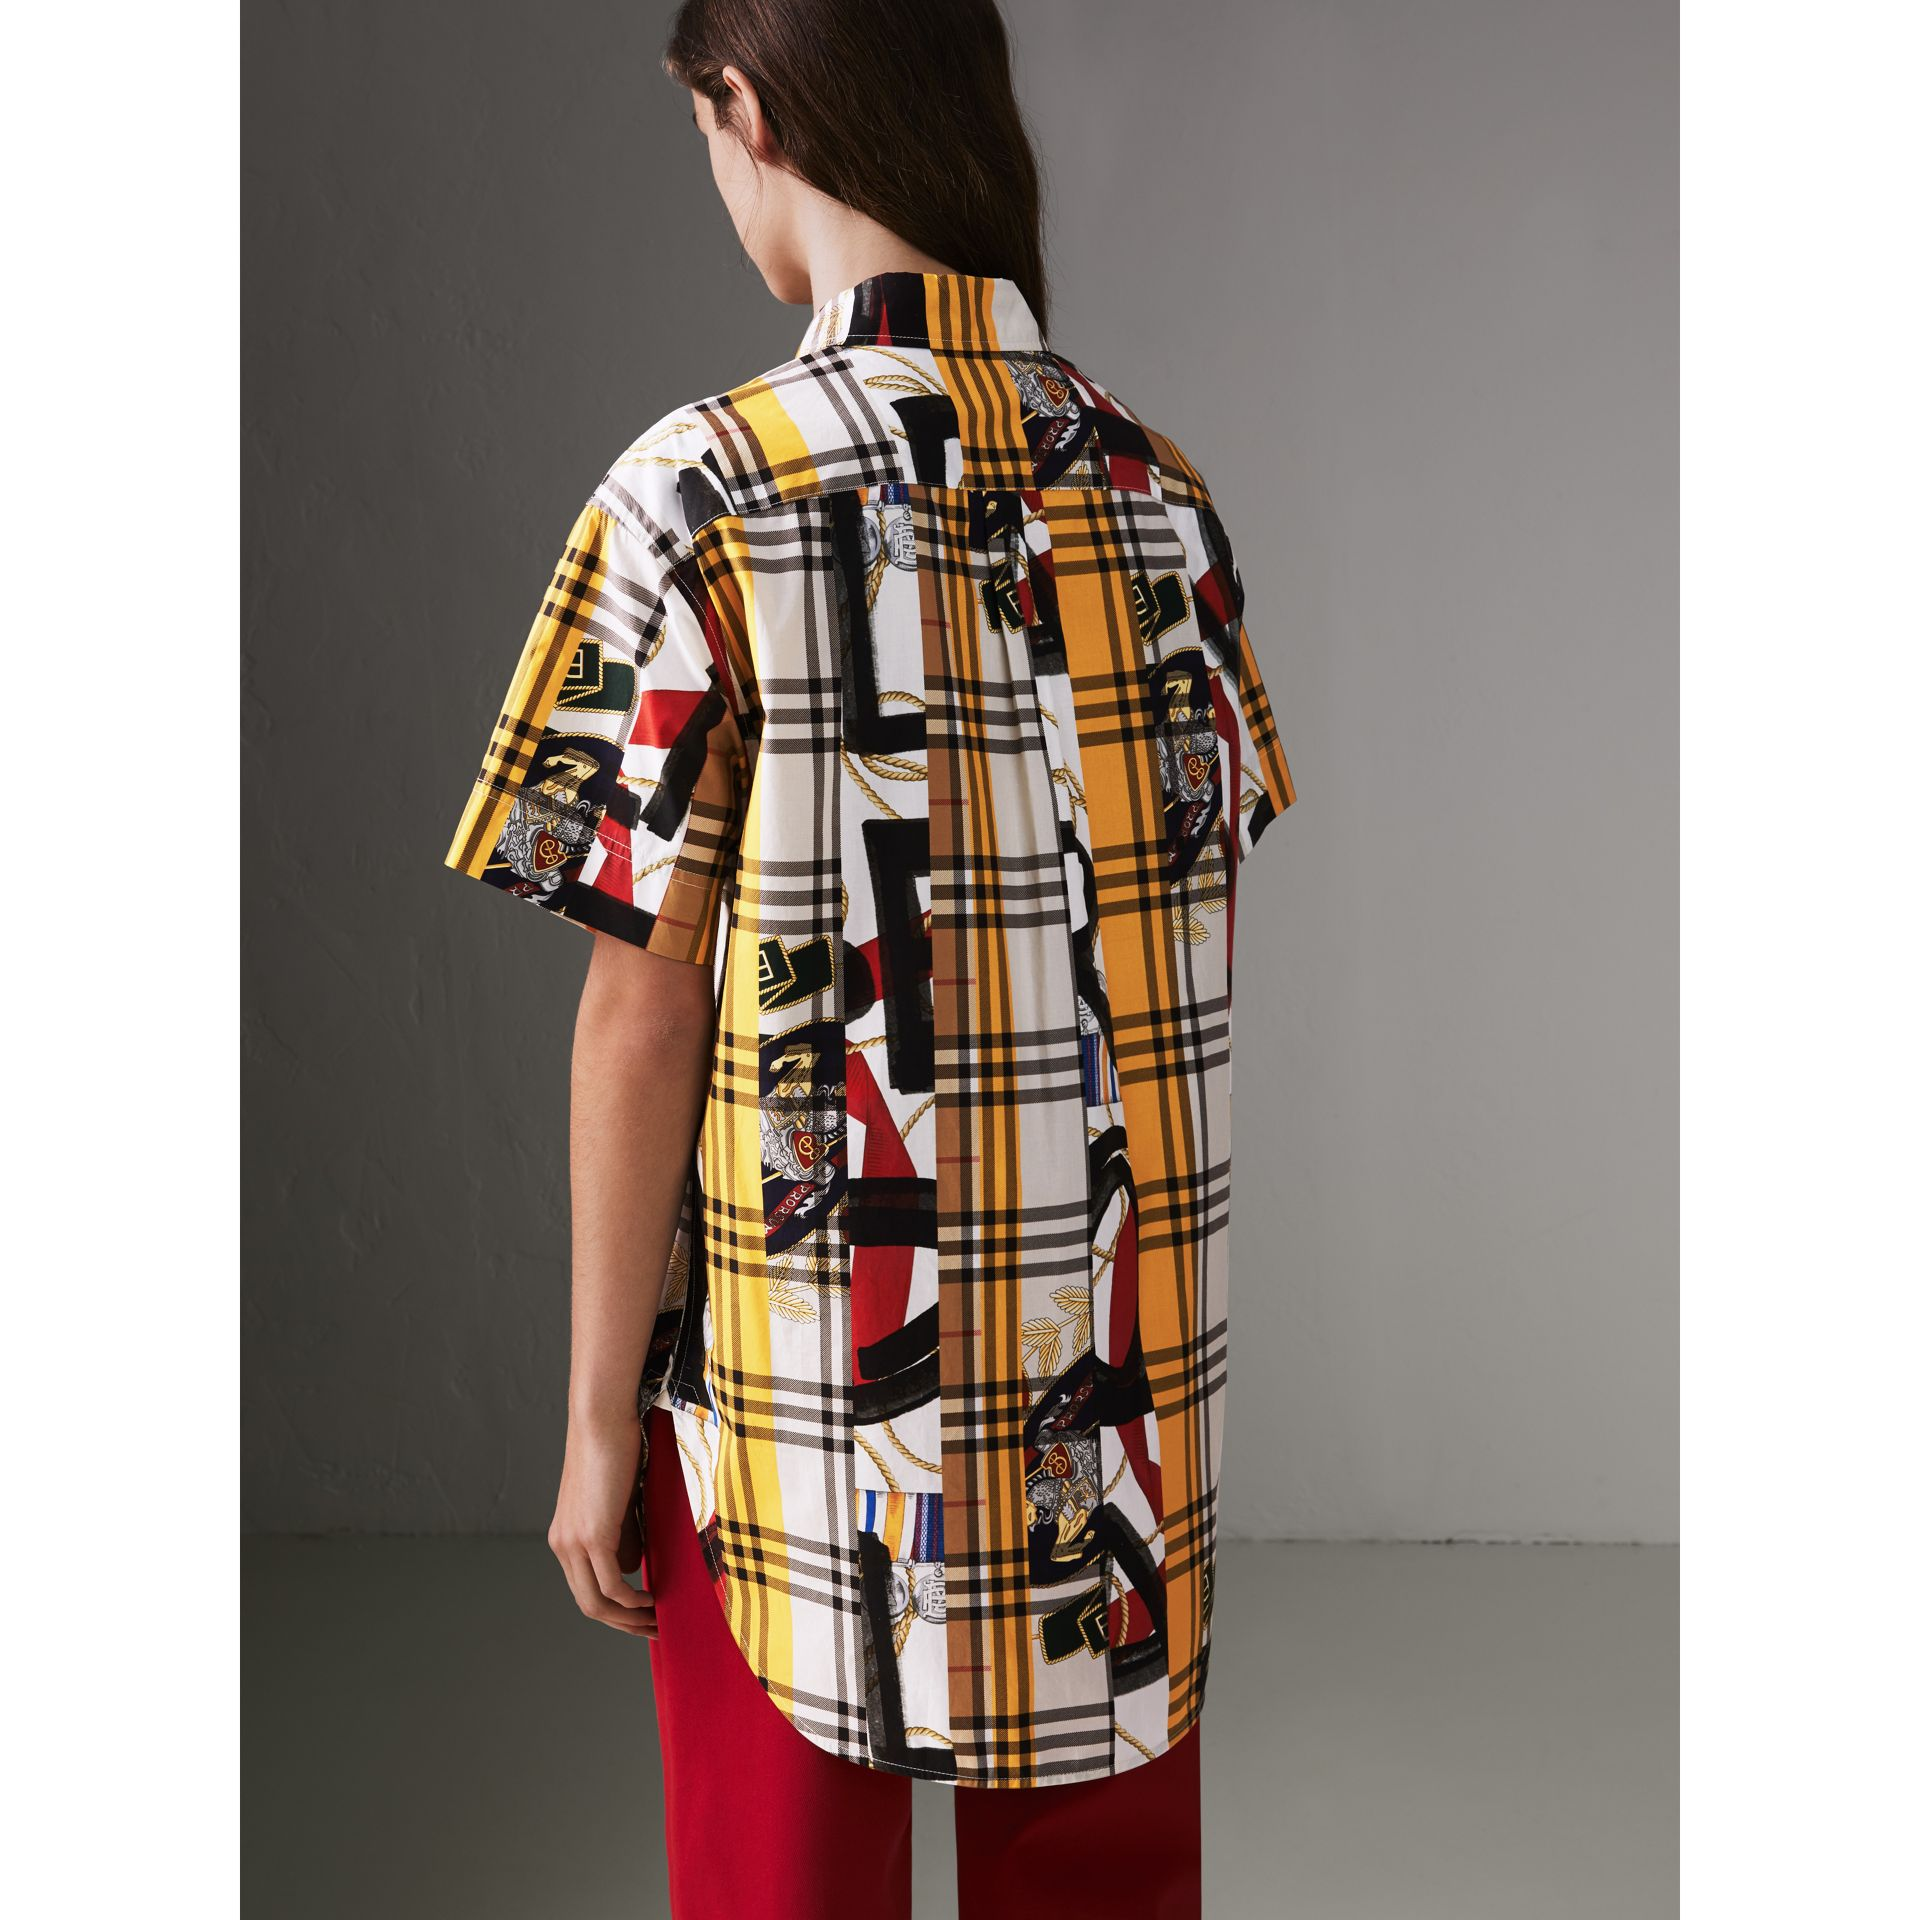 Short-sleeve Archive Scarf Print Check Cotton Shirt in Multicolour - Women | Burberry - gallery image 2